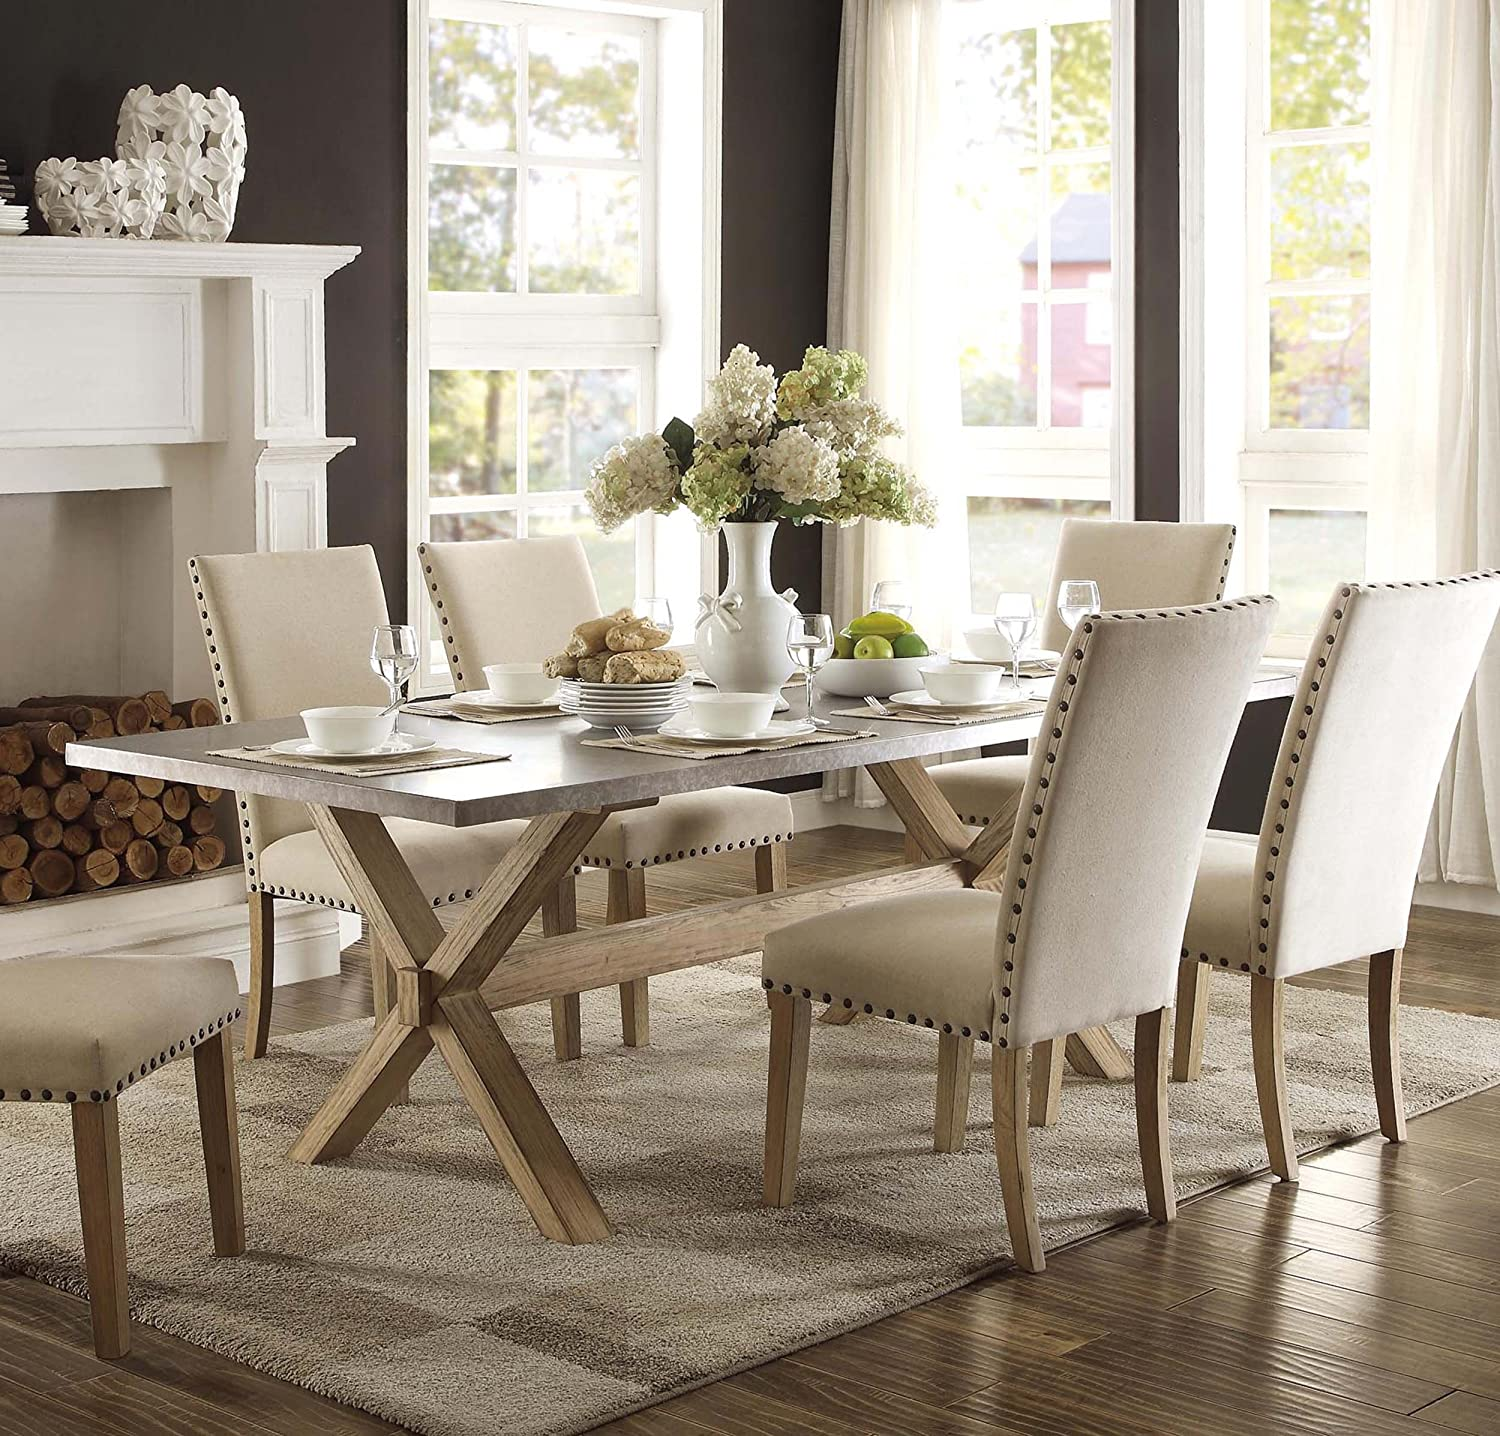 Amazon Homelegance Luella 84 Inch Dining Table with Natural